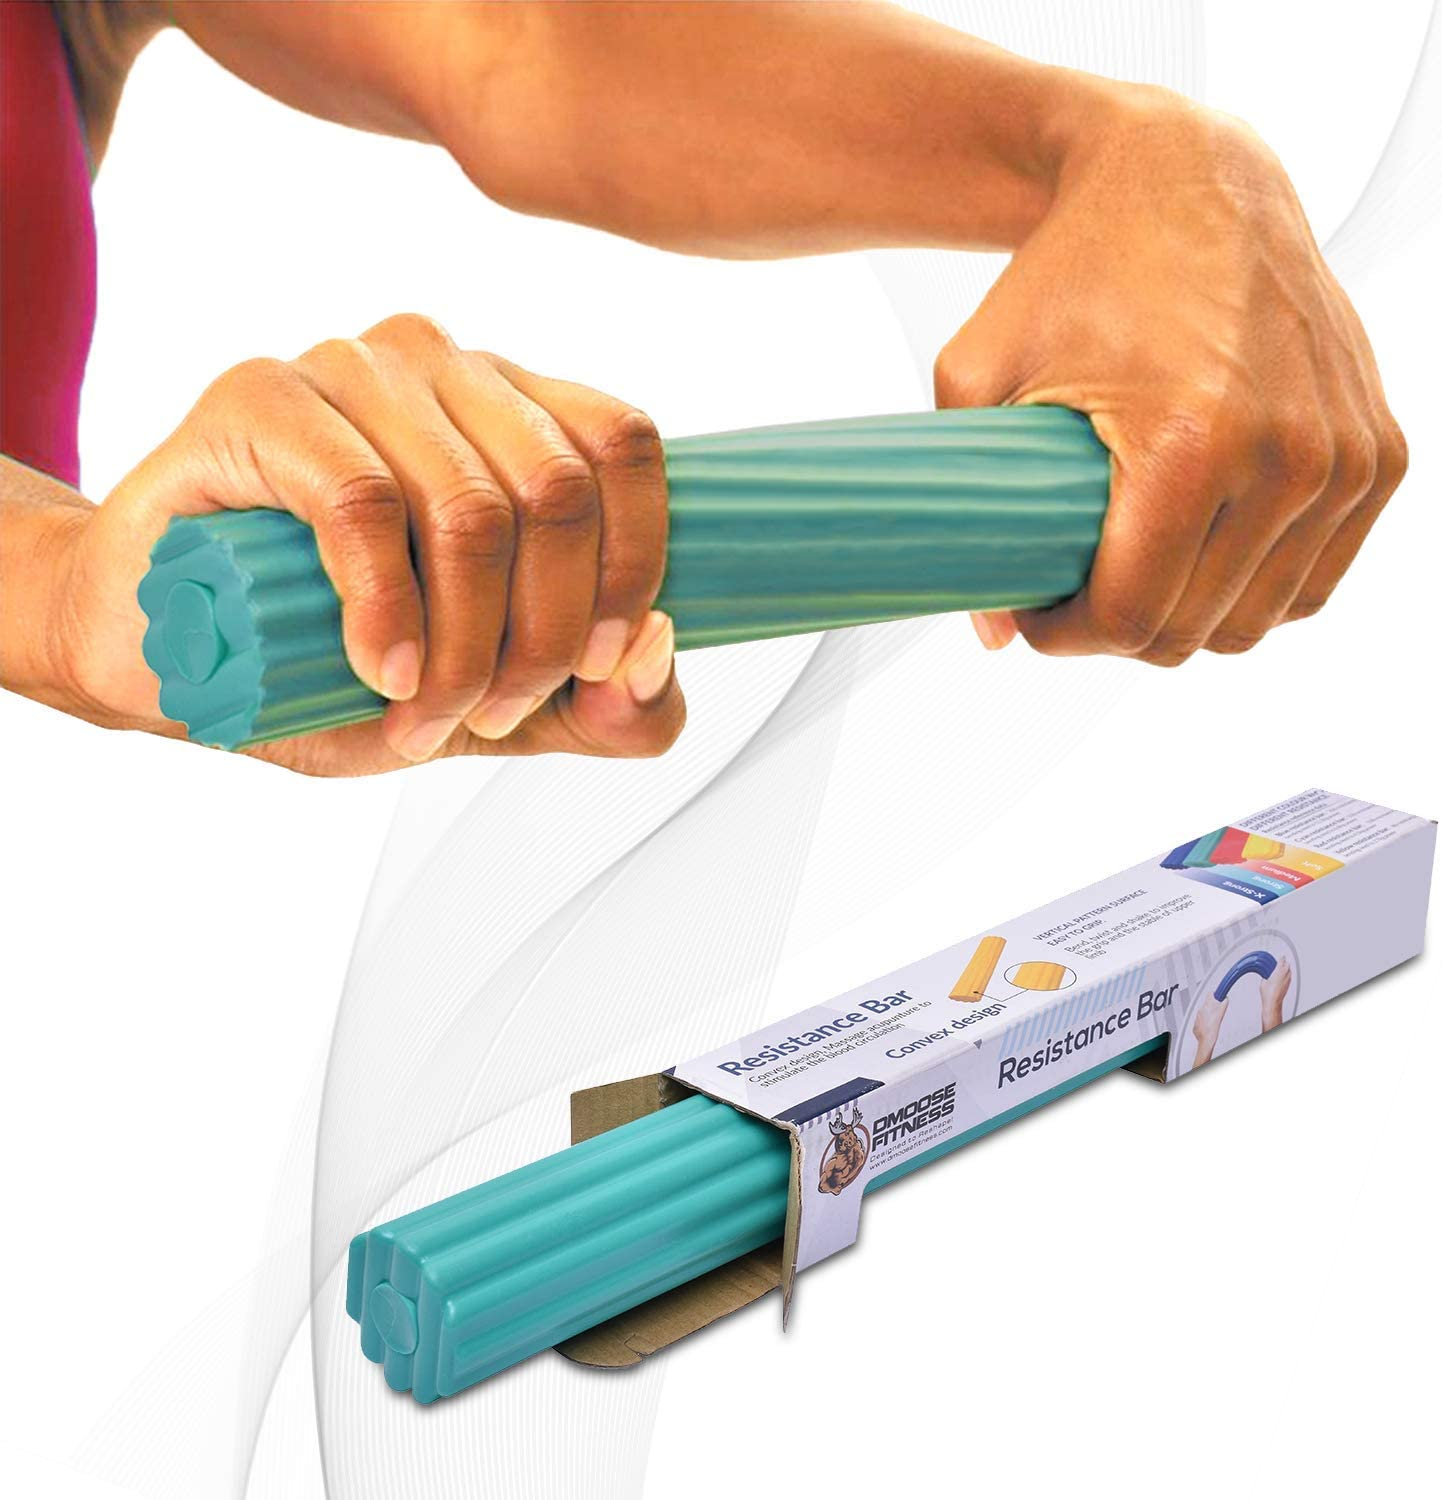 DMoose Flex Tennis Elbow Bar for Physical Therapy, Improve Grip Strength Hand Forearm Strengthener for Golfers, Rehab, Tendonitis Pain, Injury Recovery, Rehabilitation Equipment, Resistance Training